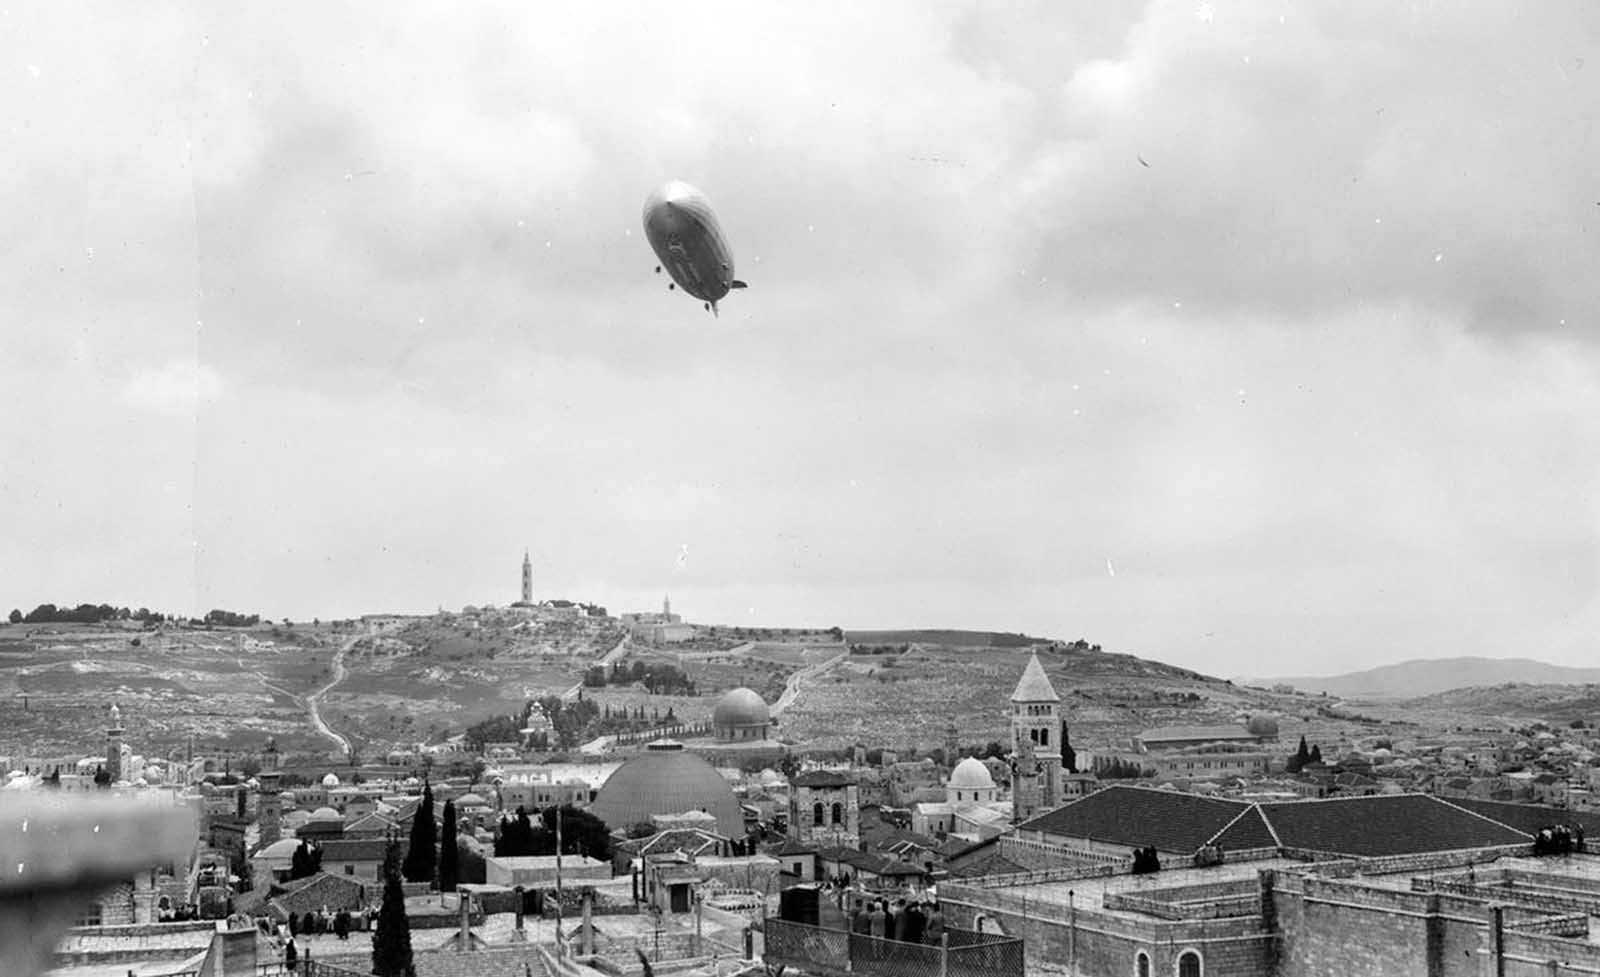 The Graf Zeppelin over the old city of Jerusalem, April 26, 1931.